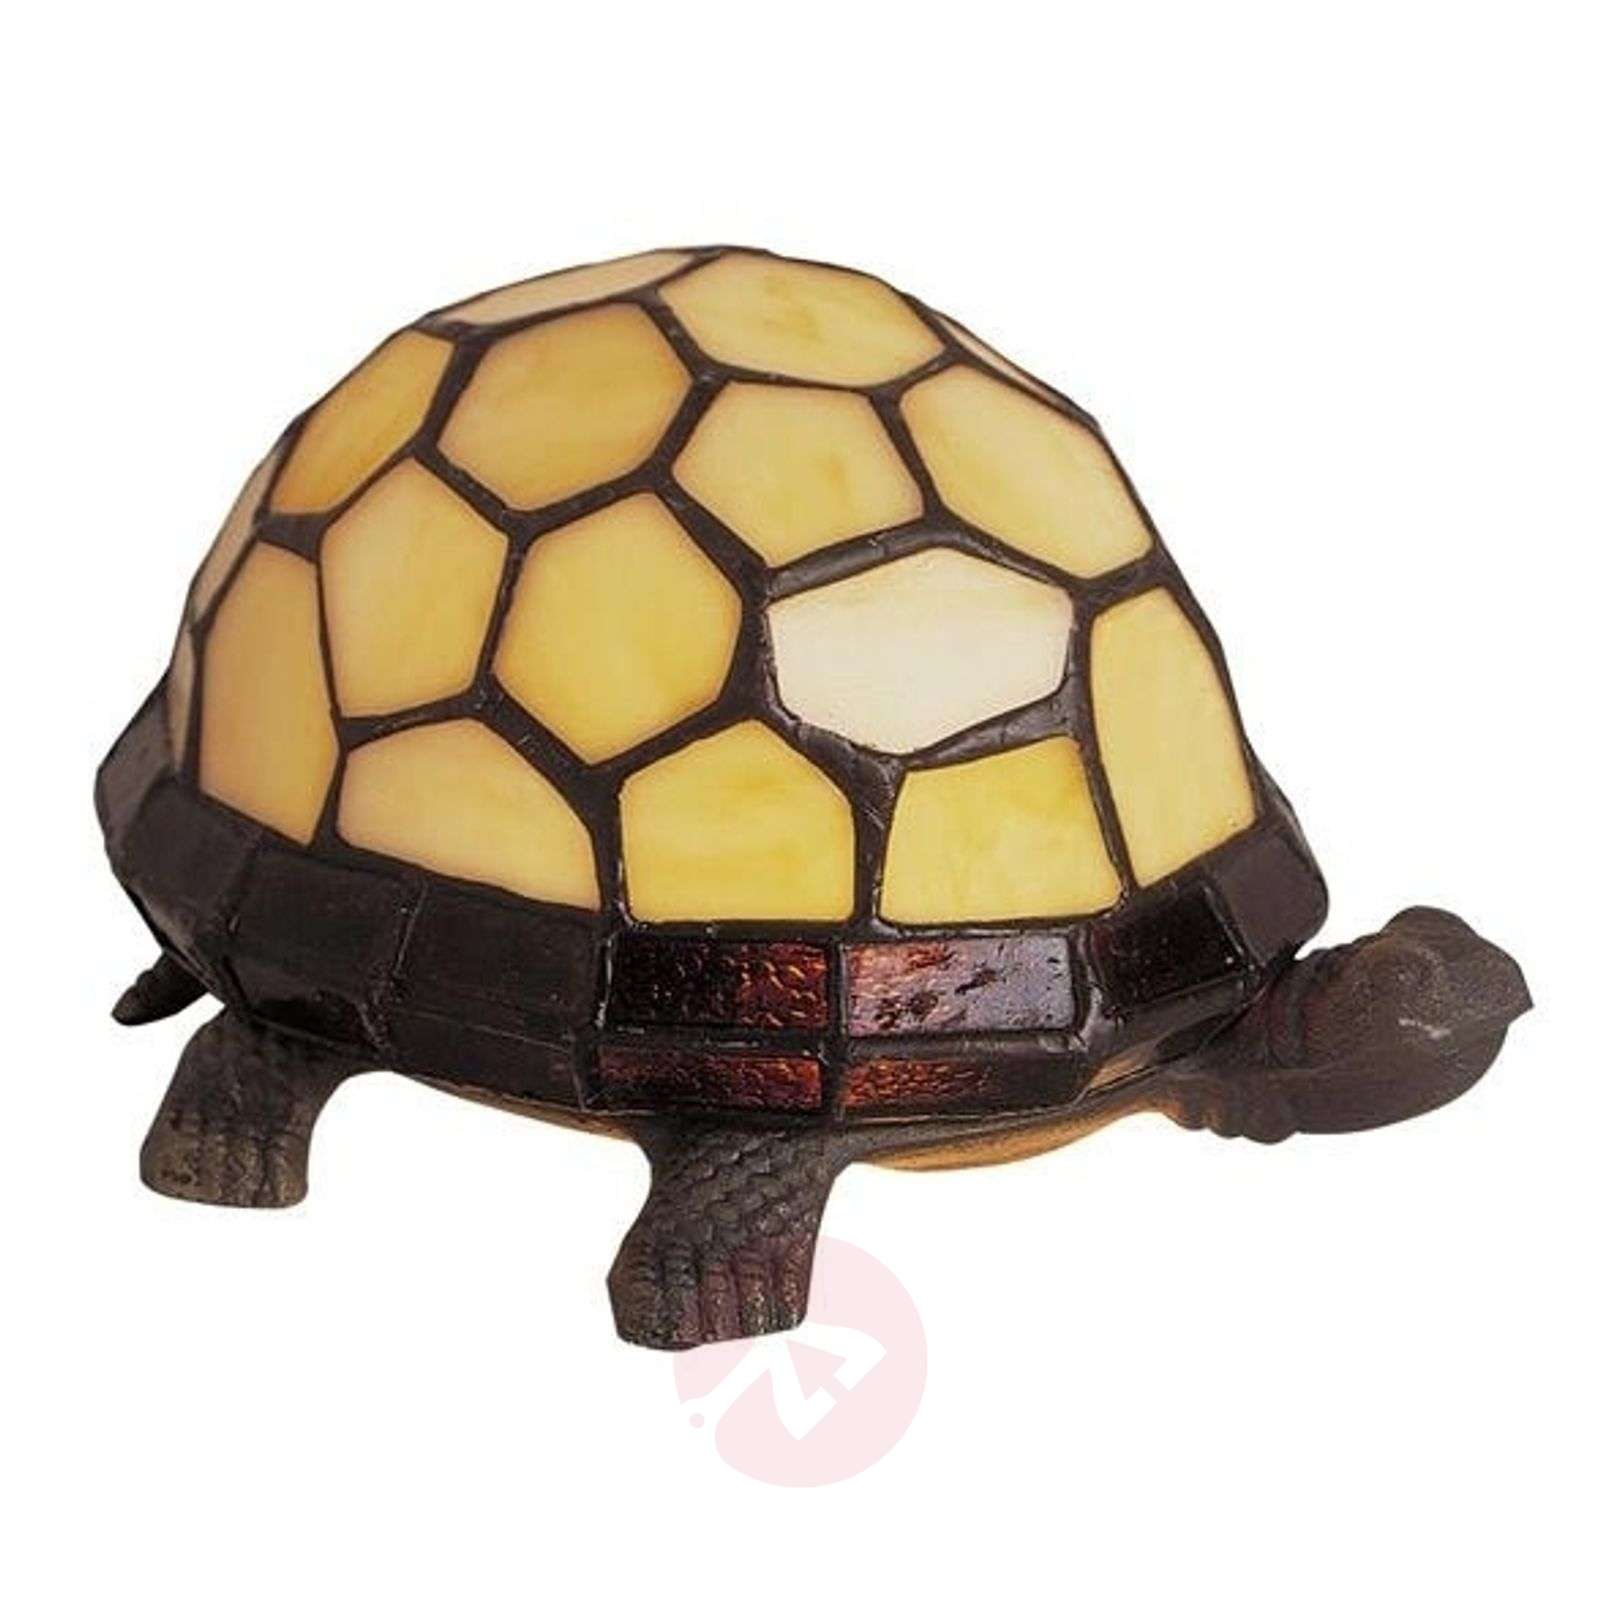 TORTUE table lamp shaped like a turtle-1032233-01